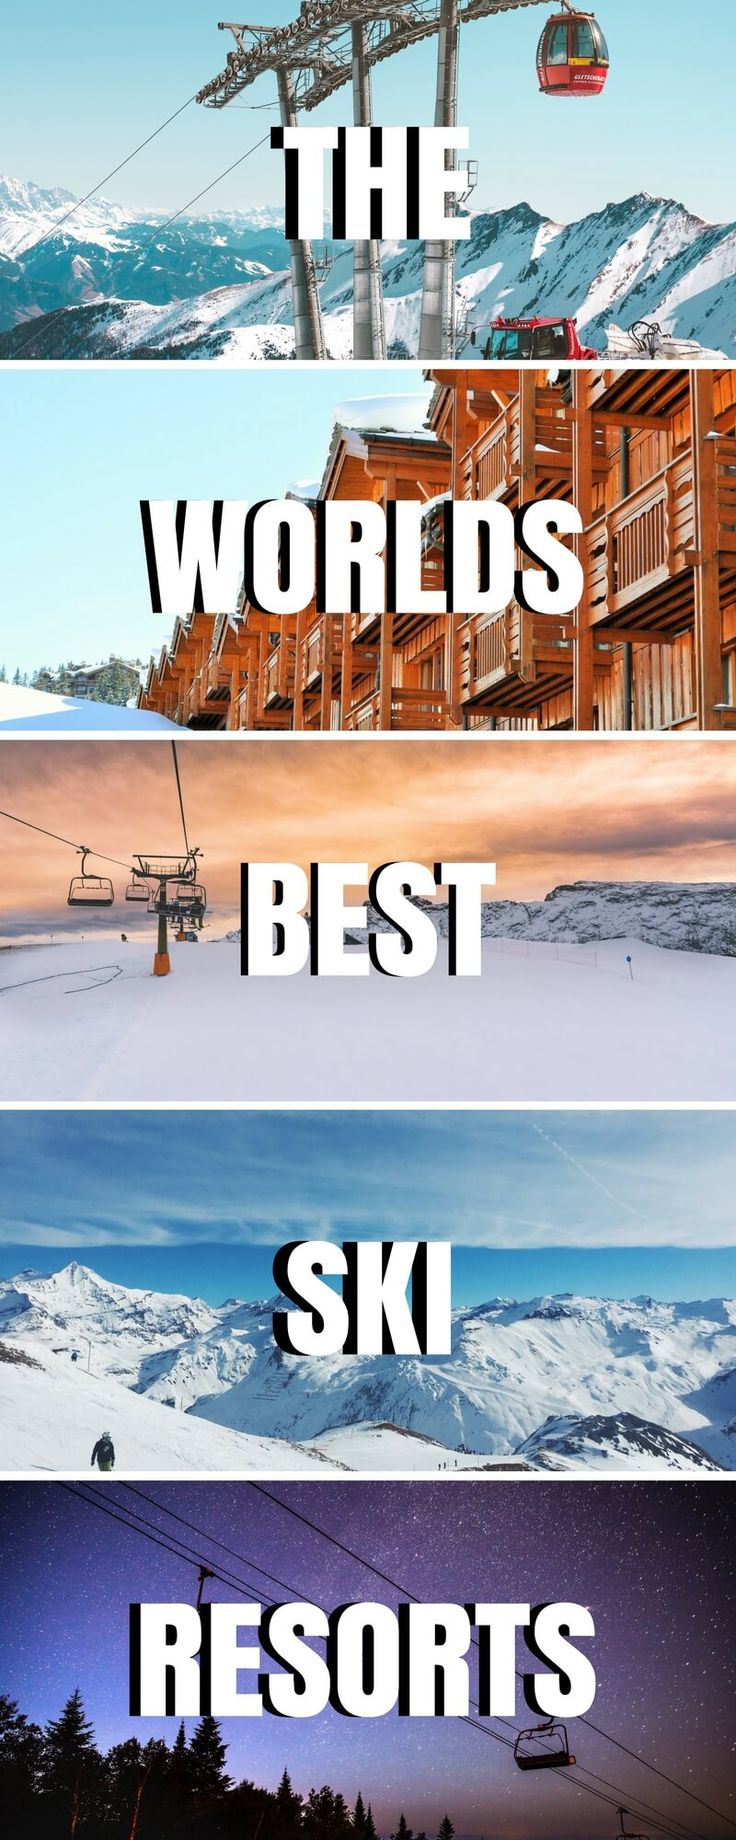 Wondering where to ski this winter? We've got you covered! With the best ski resorts in the USA, Canada, Europe & beyond, let us help plan your trip! ***** Best ski resorts in the USA | Best Ski Resorts in Canada | Best Ski Resorts in North America | Best Ski Resorts in Europe | Best Ski Resorts in France | Best Ski Resorts in Switzerland | Best Ski Resorts in Austria | Top Ski Resorts | Where to ski for beginners | Where to snowboard | Plan your ski vacation | ski holiday | Best Resorts to…